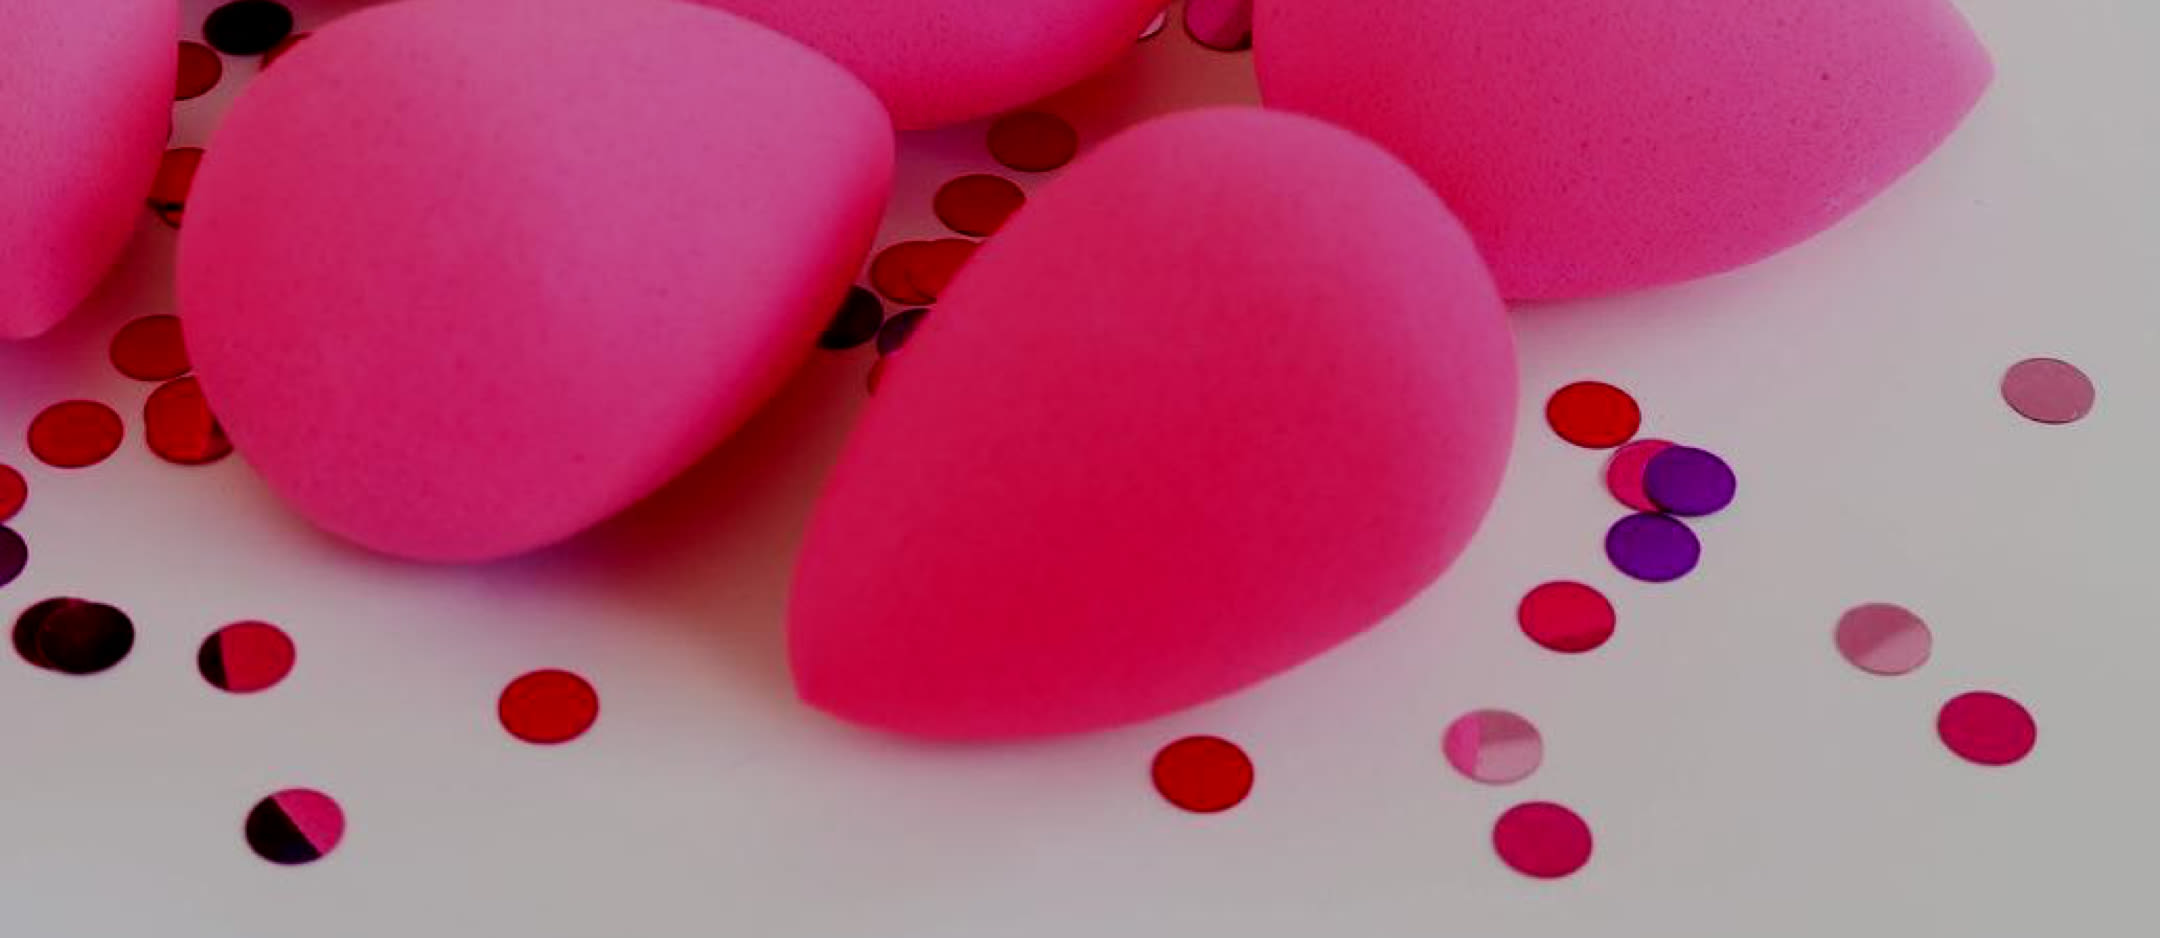 beautyblender-header-vis